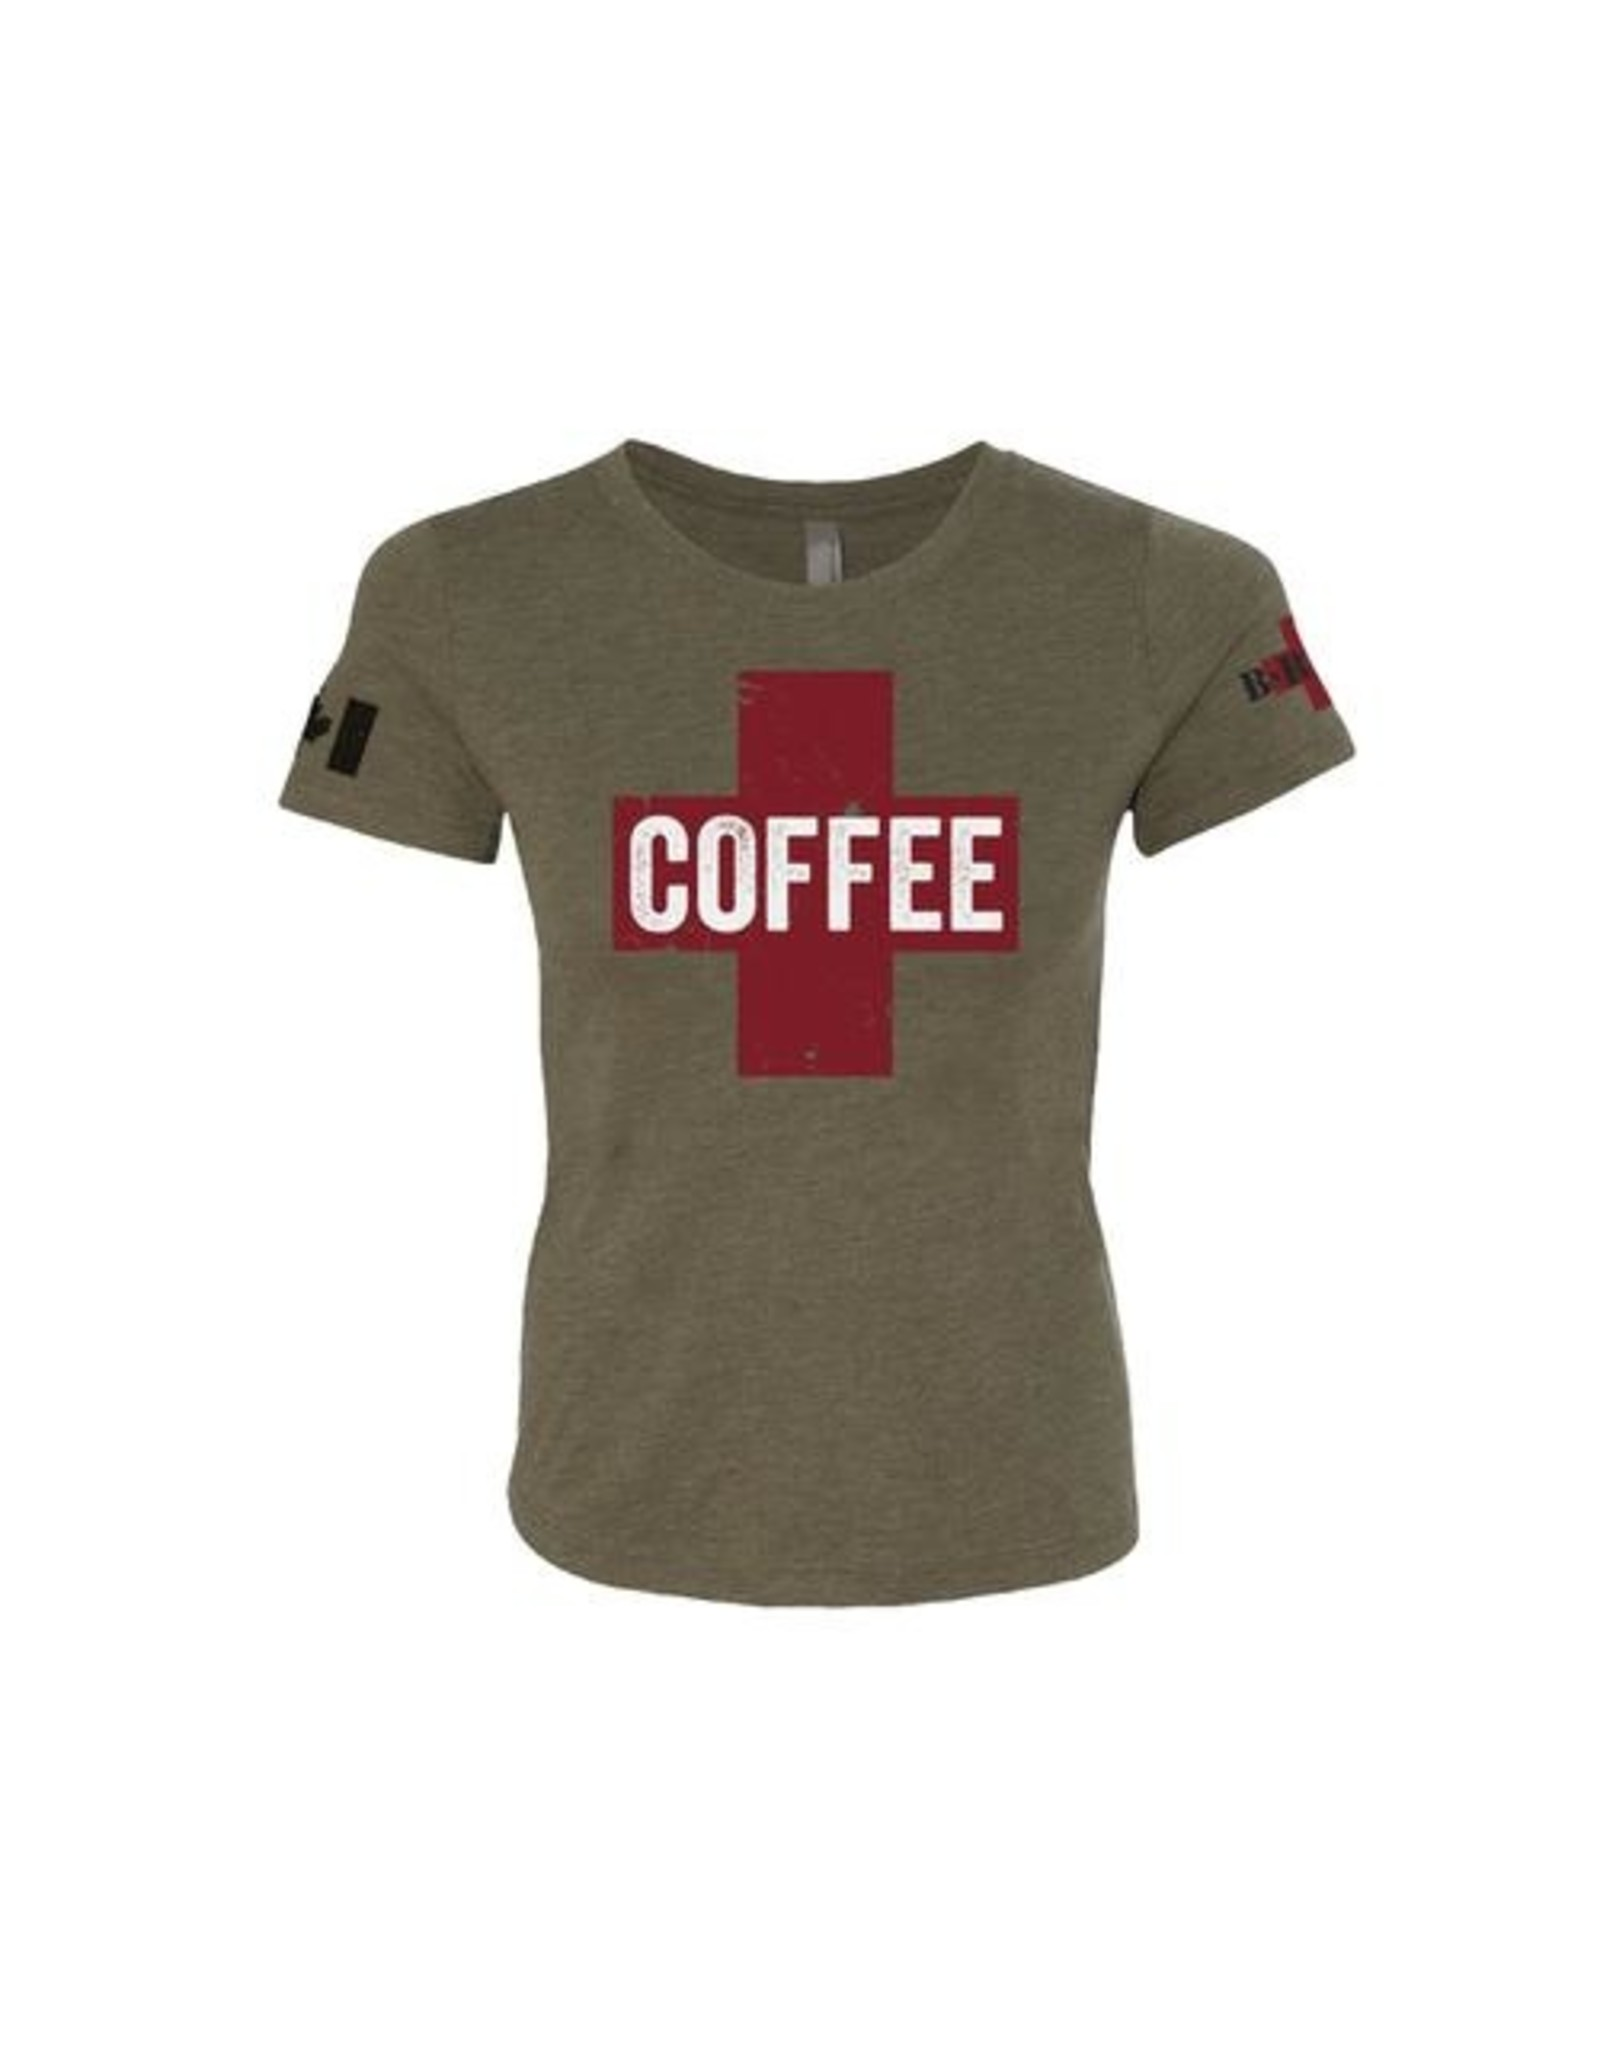 BRCC Women's Shirt Coffee Saves Lives Color: Green ..Size: Extra Large